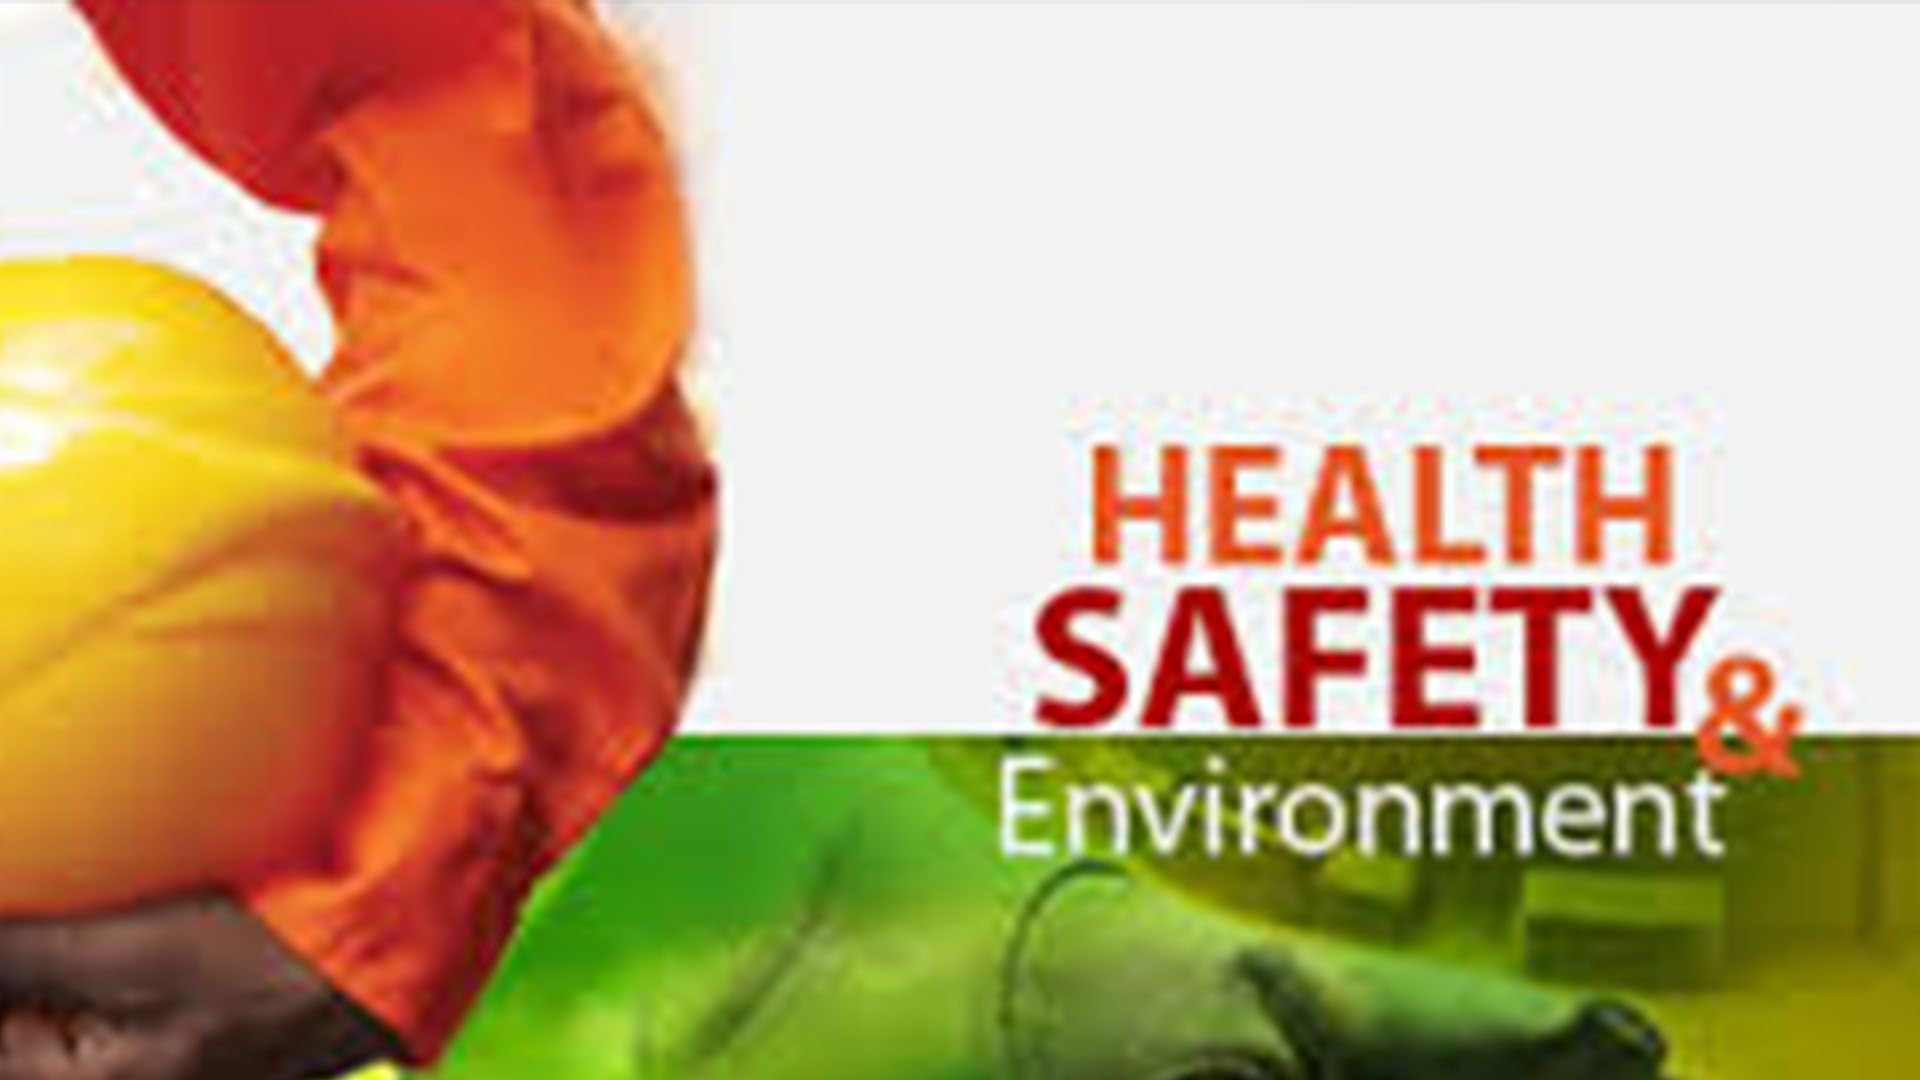 Environmental Health And Safety Wallpapers - Wallpaper Cave